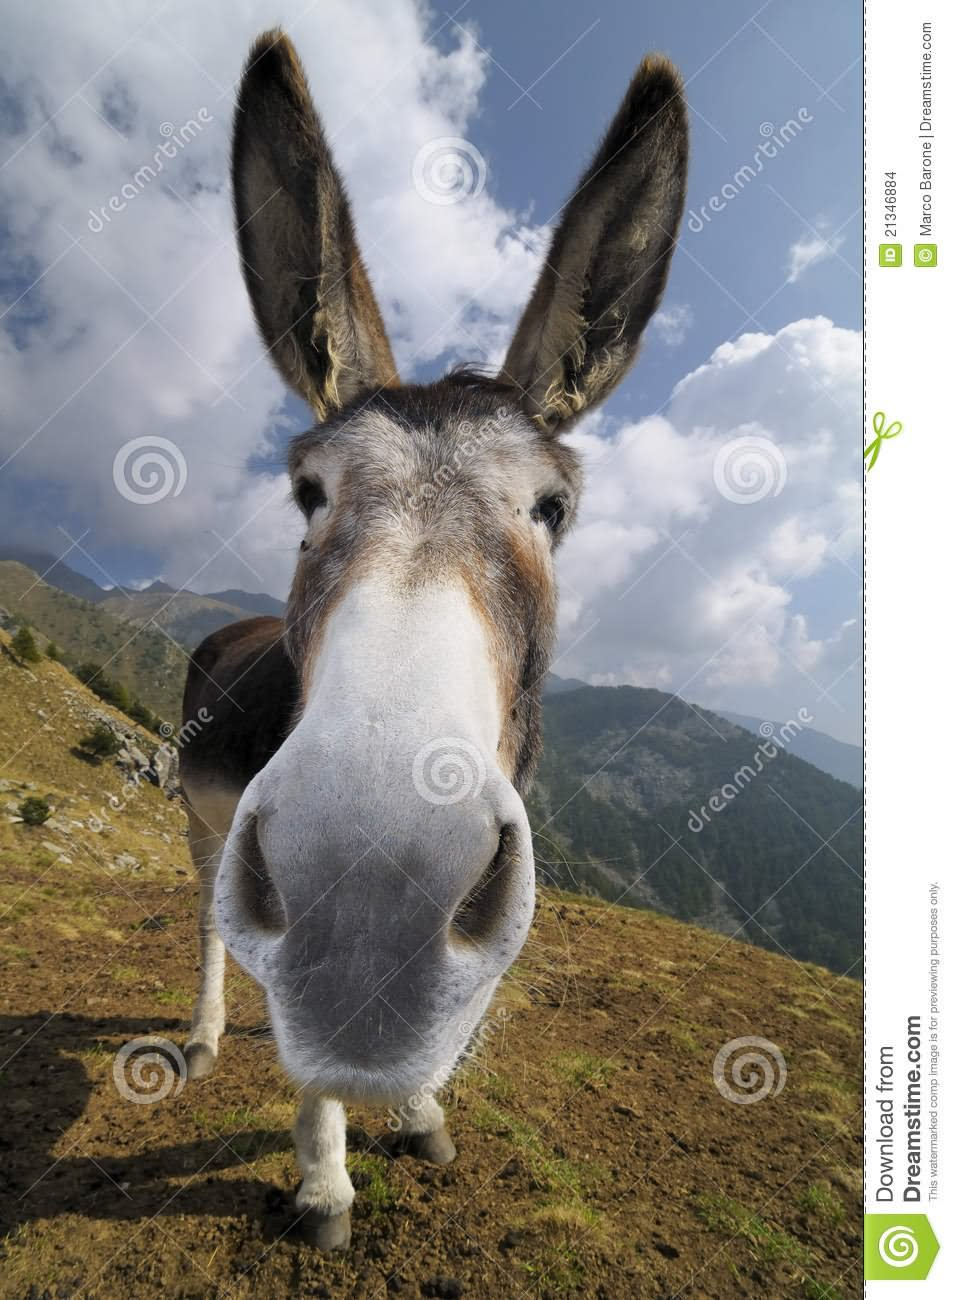 funny donkey faces - photo #25